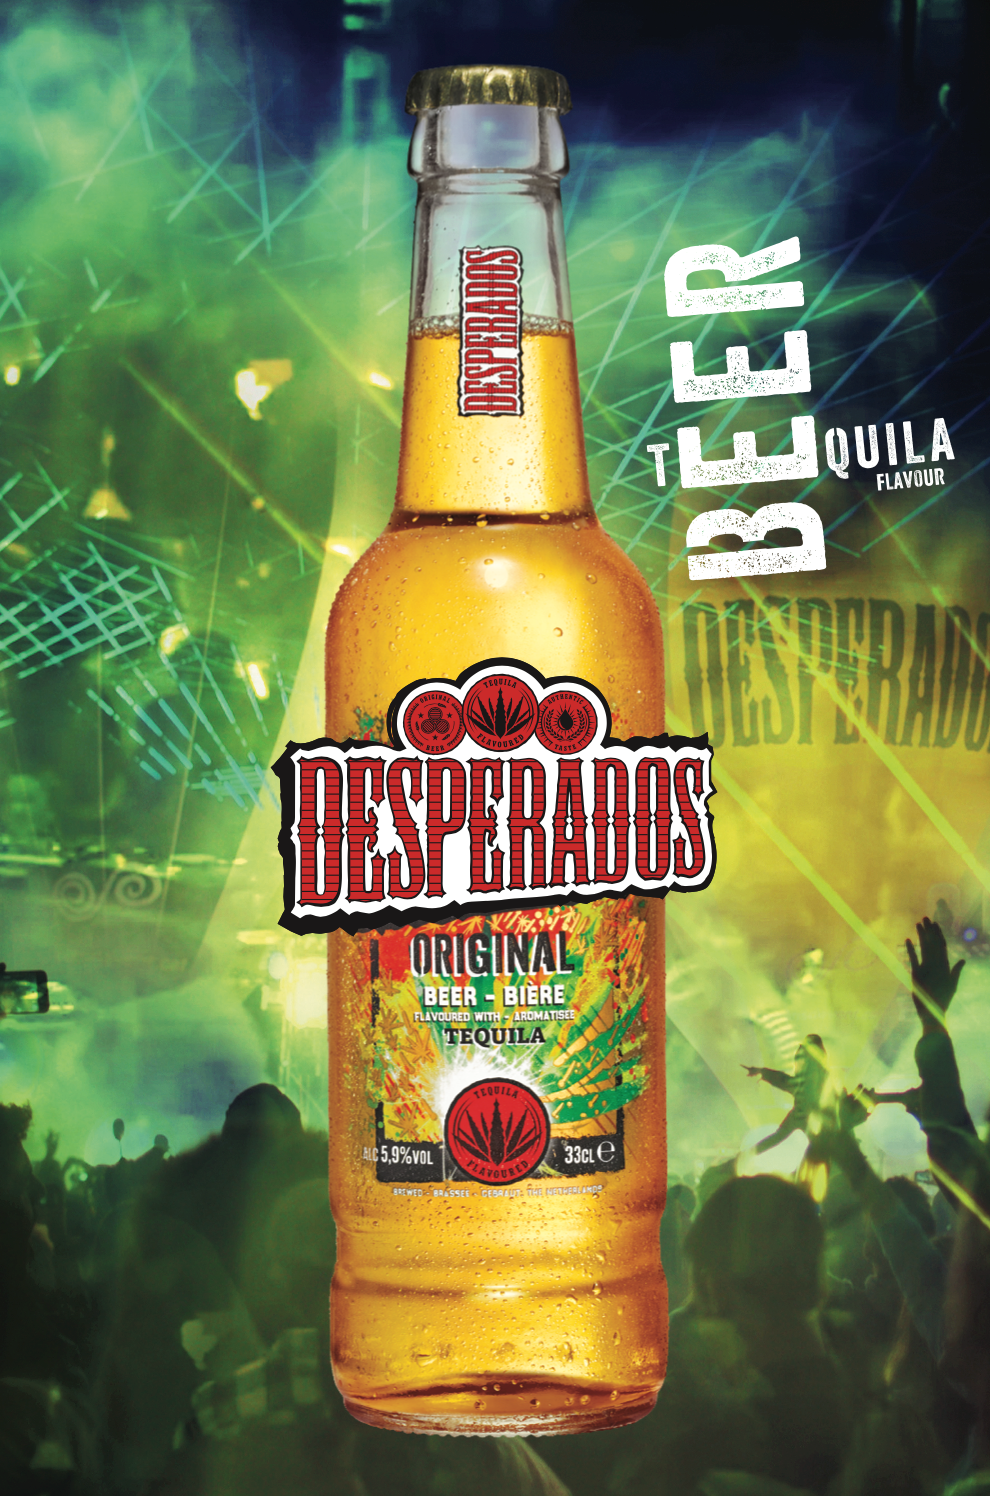 Desperados Dials Up The Party With Its New Brand Design The British Guild Of Beer Writers